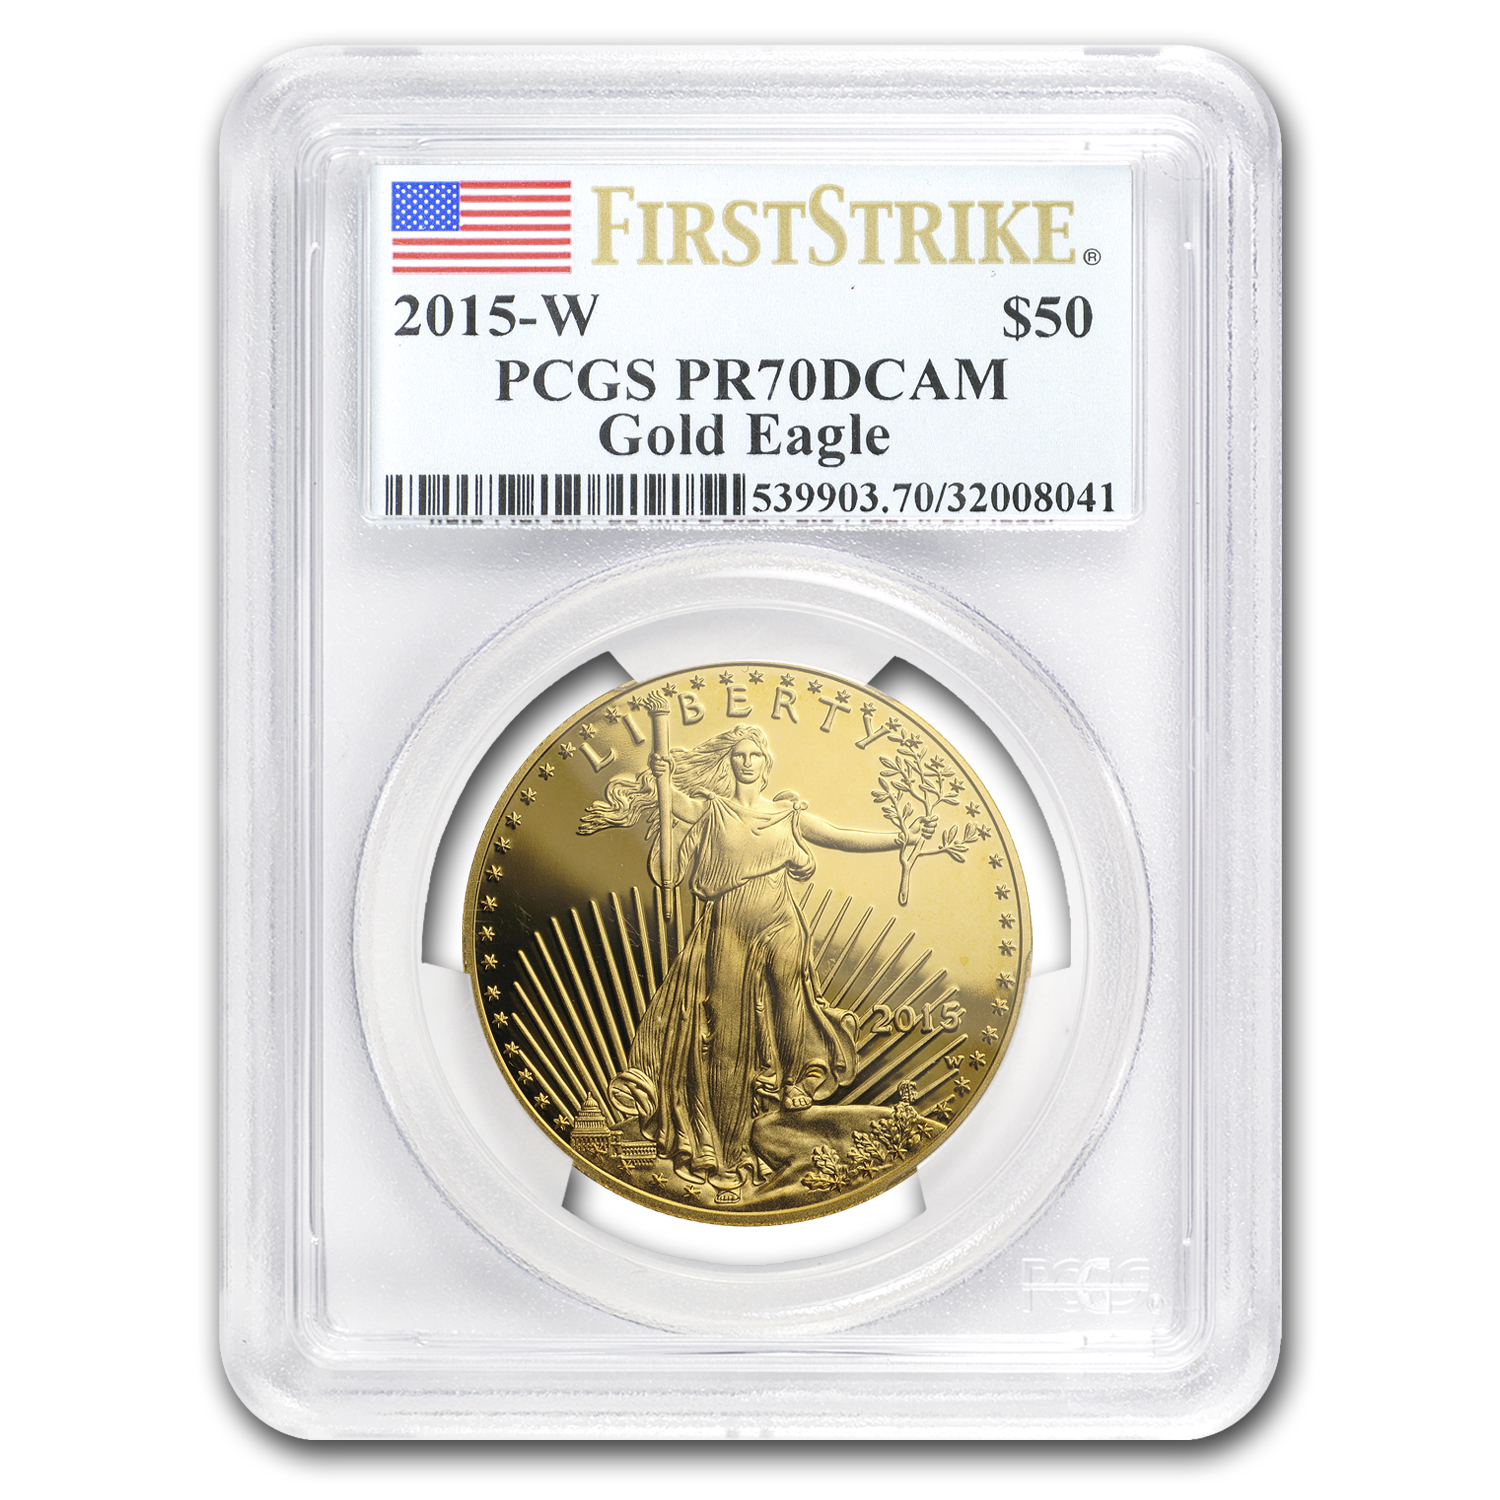 2015-W 1 oz Proof Gold American Eagle PR-70 PCGS (First Strike)